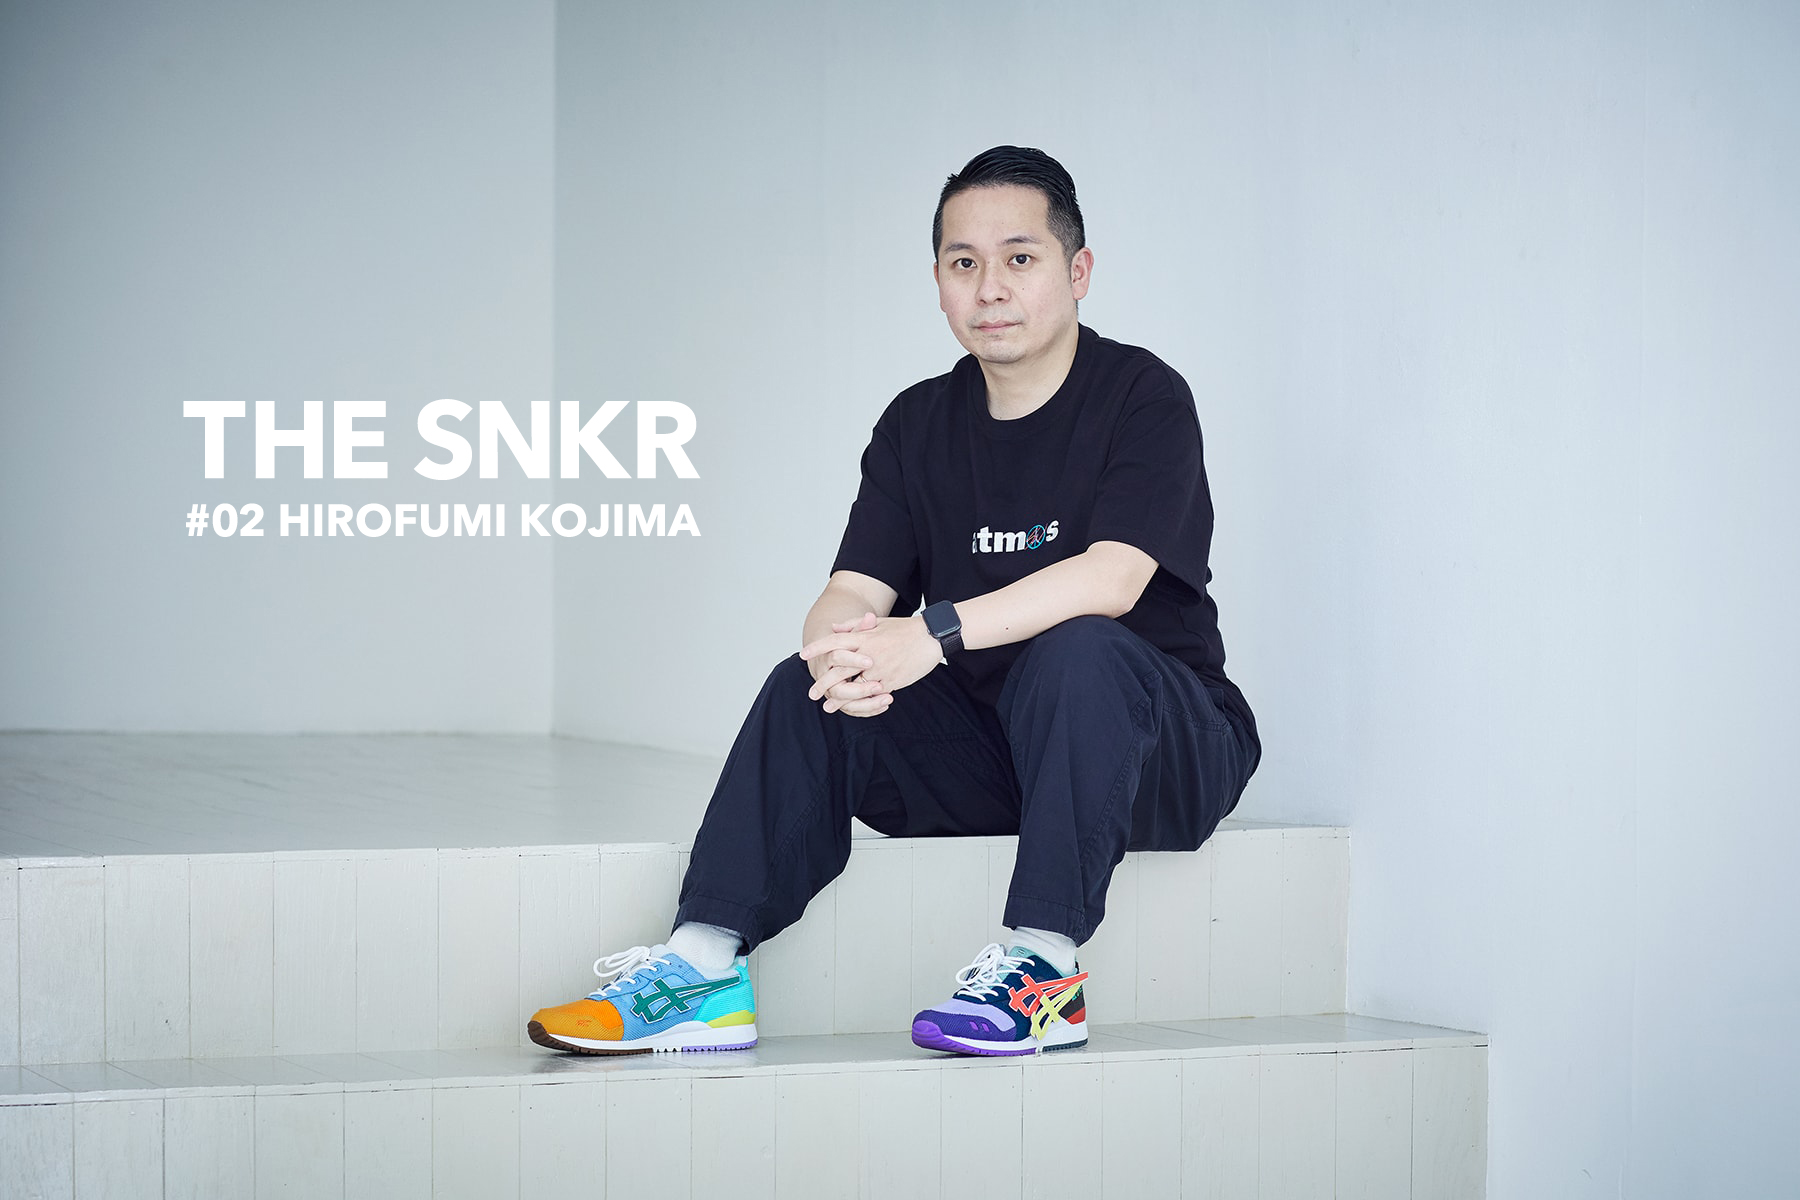 THE SNKR #02 小島 奉文